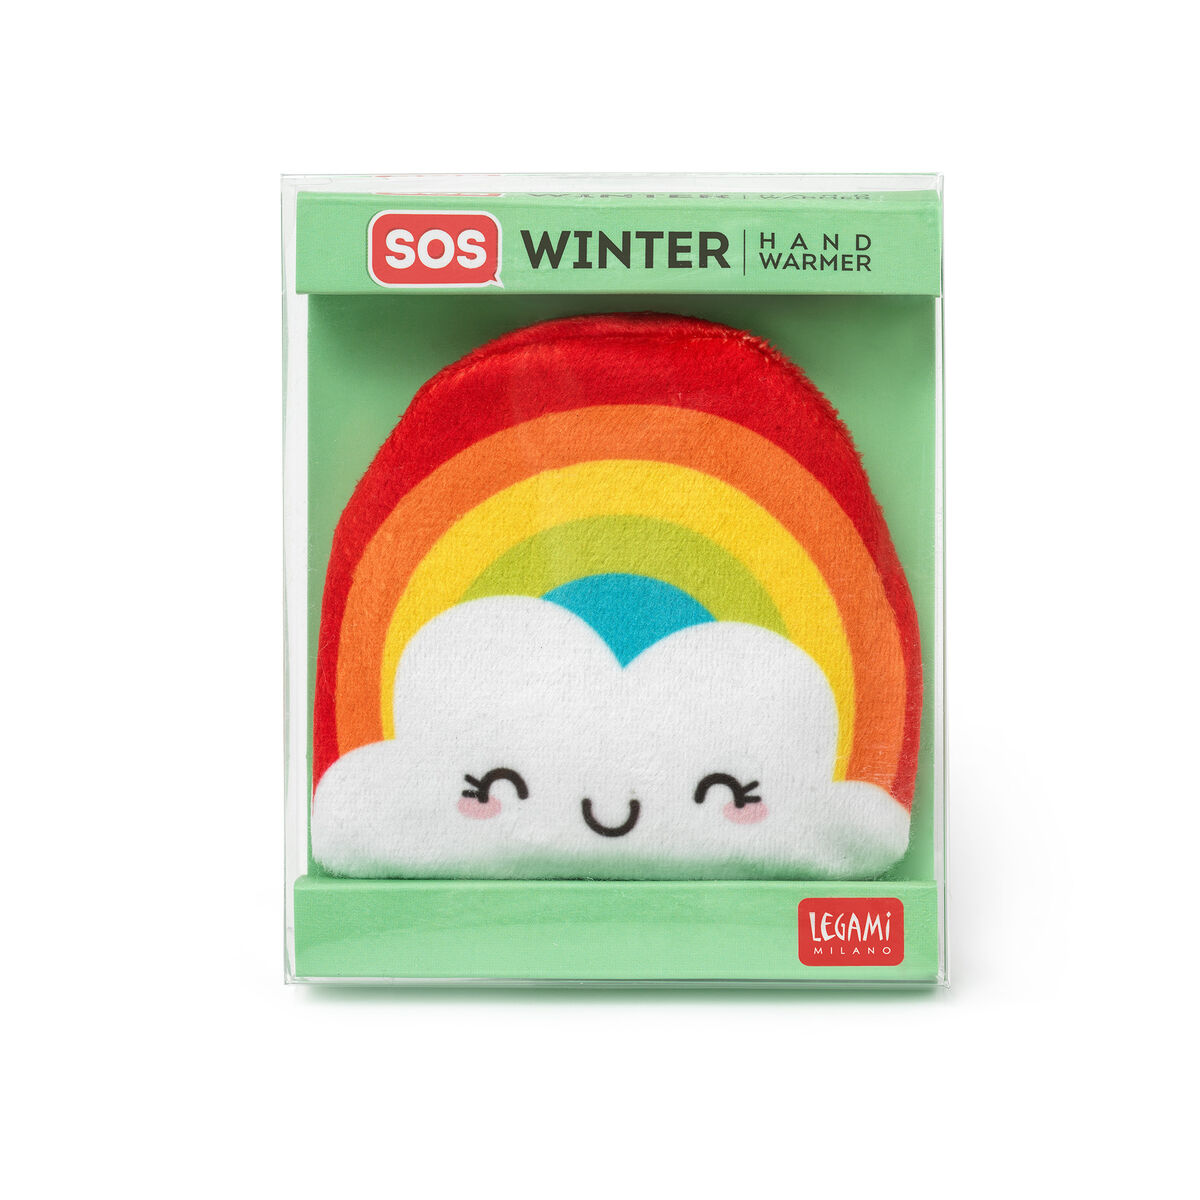 SOS Winter - Hand Warmer, , zoo